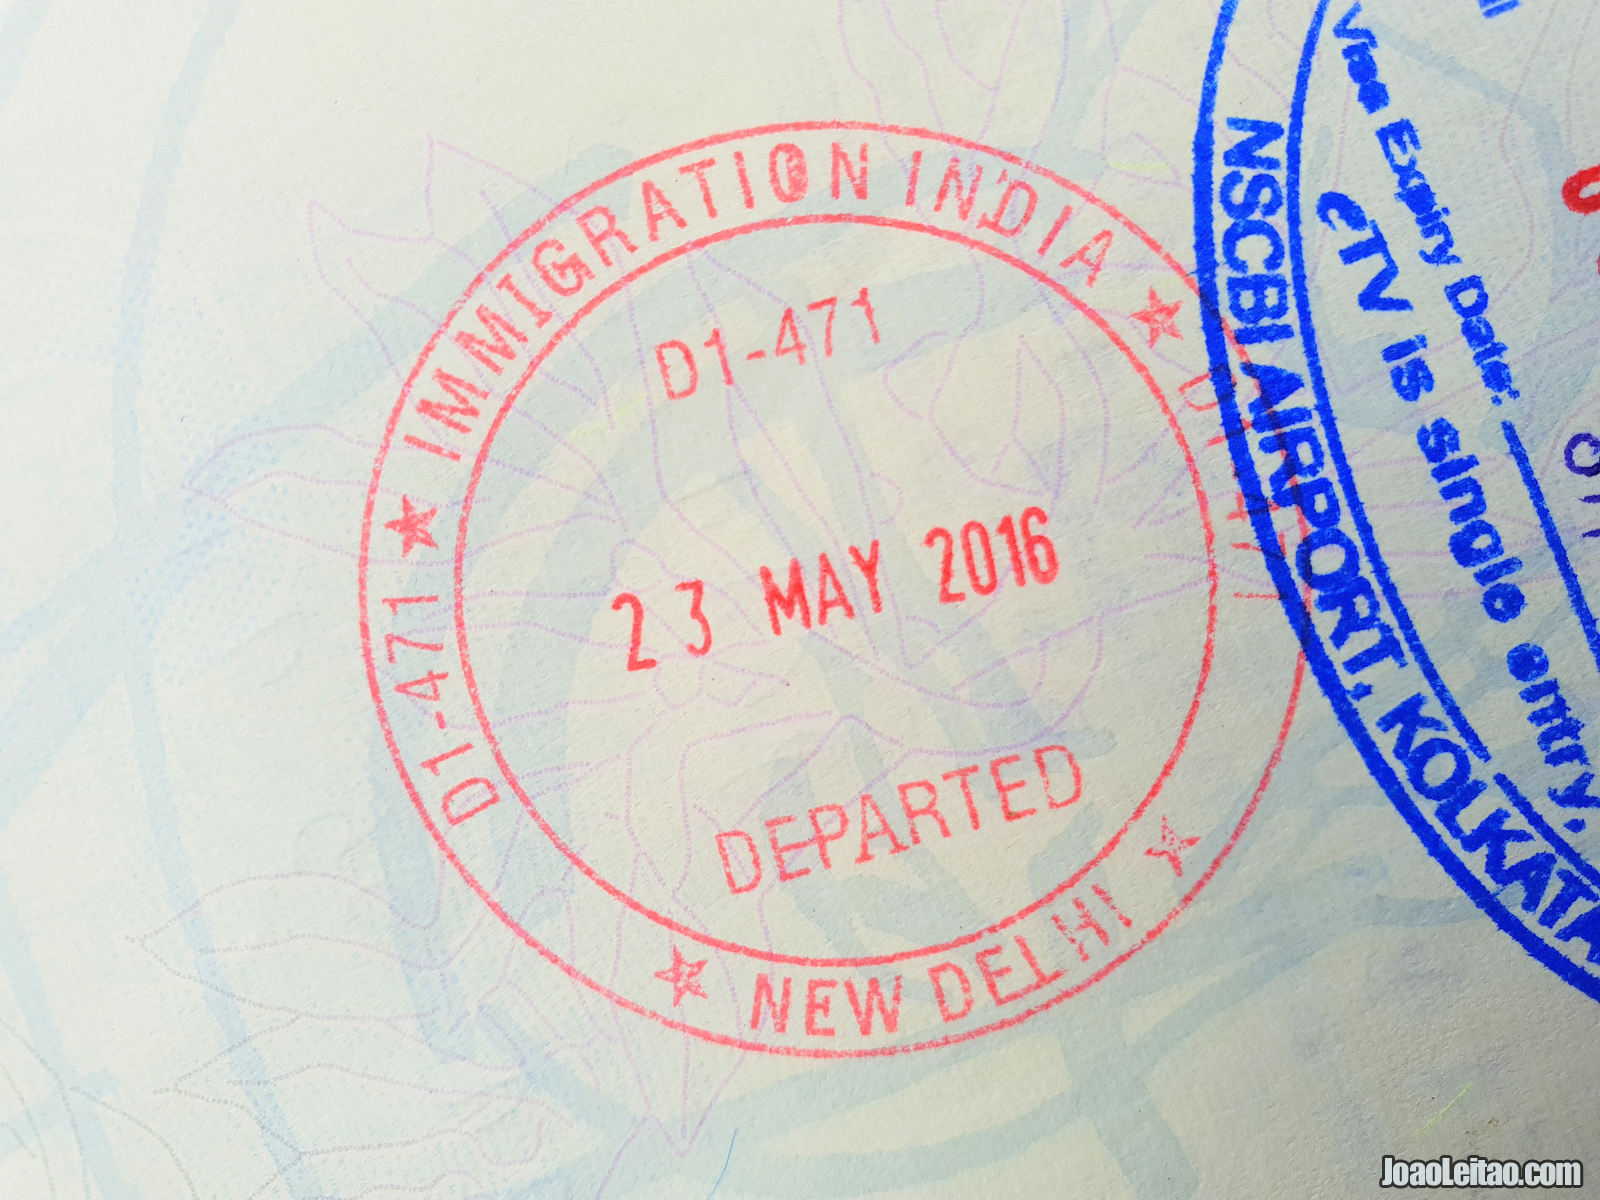 India departure stamp in Passport